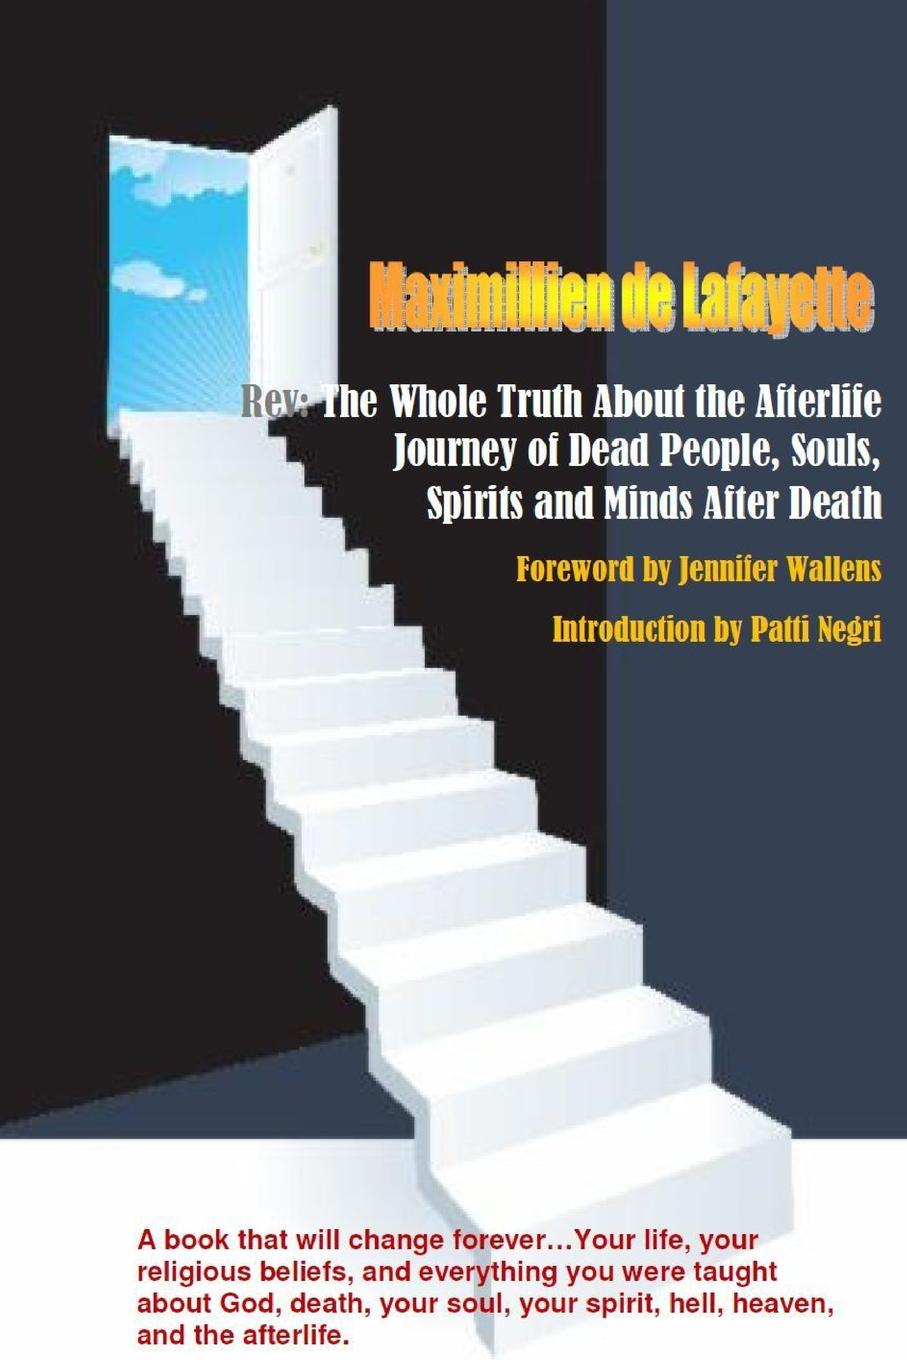 Maximillien De Lafayette Rev. The Whole Truth About the Afterlife: Journey of Dead People, Souls, Spirits and Minds After Death ( dead souls